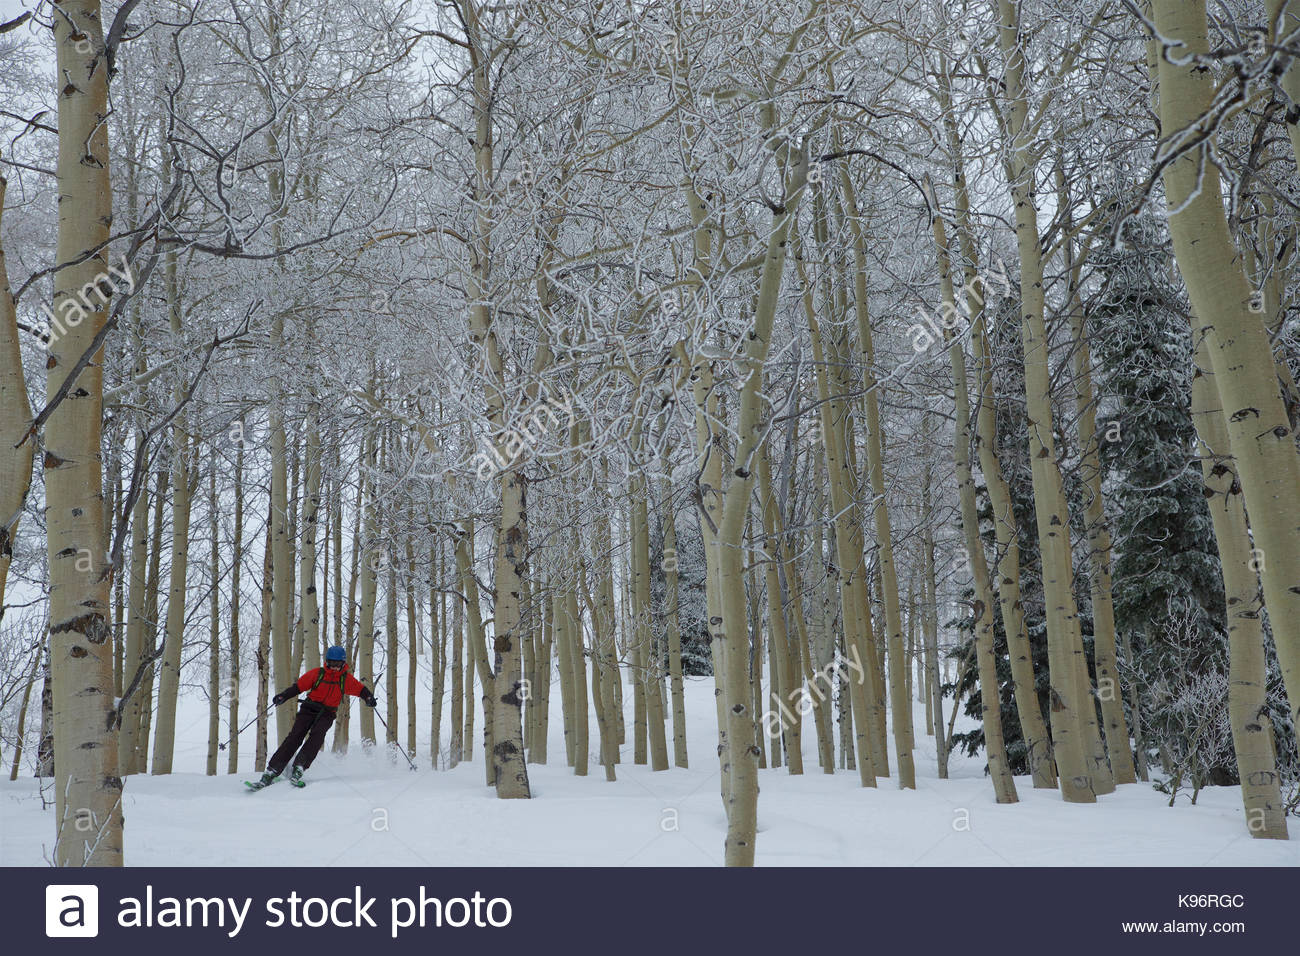 A teen boy downhill skiing through the trees on a stormy day. - Stock Image